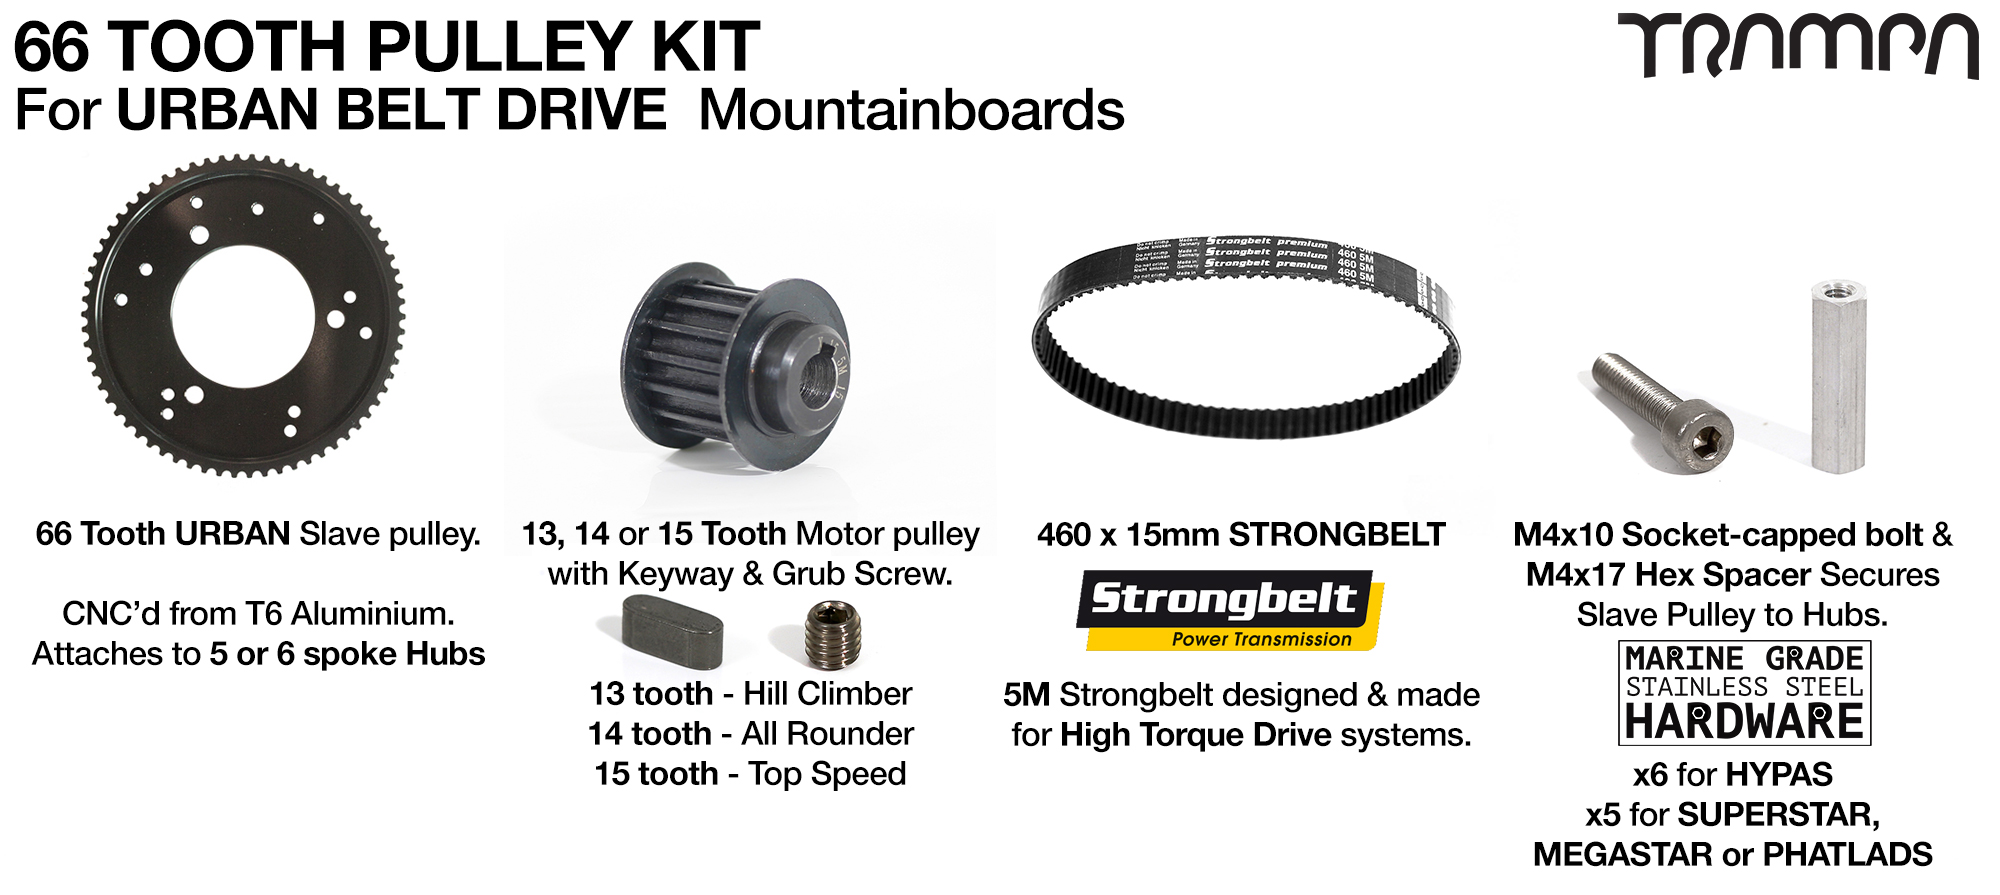 Complete URBAN Carver Pulley Kit with 15mm STRONGBELT for HYPA Hubs